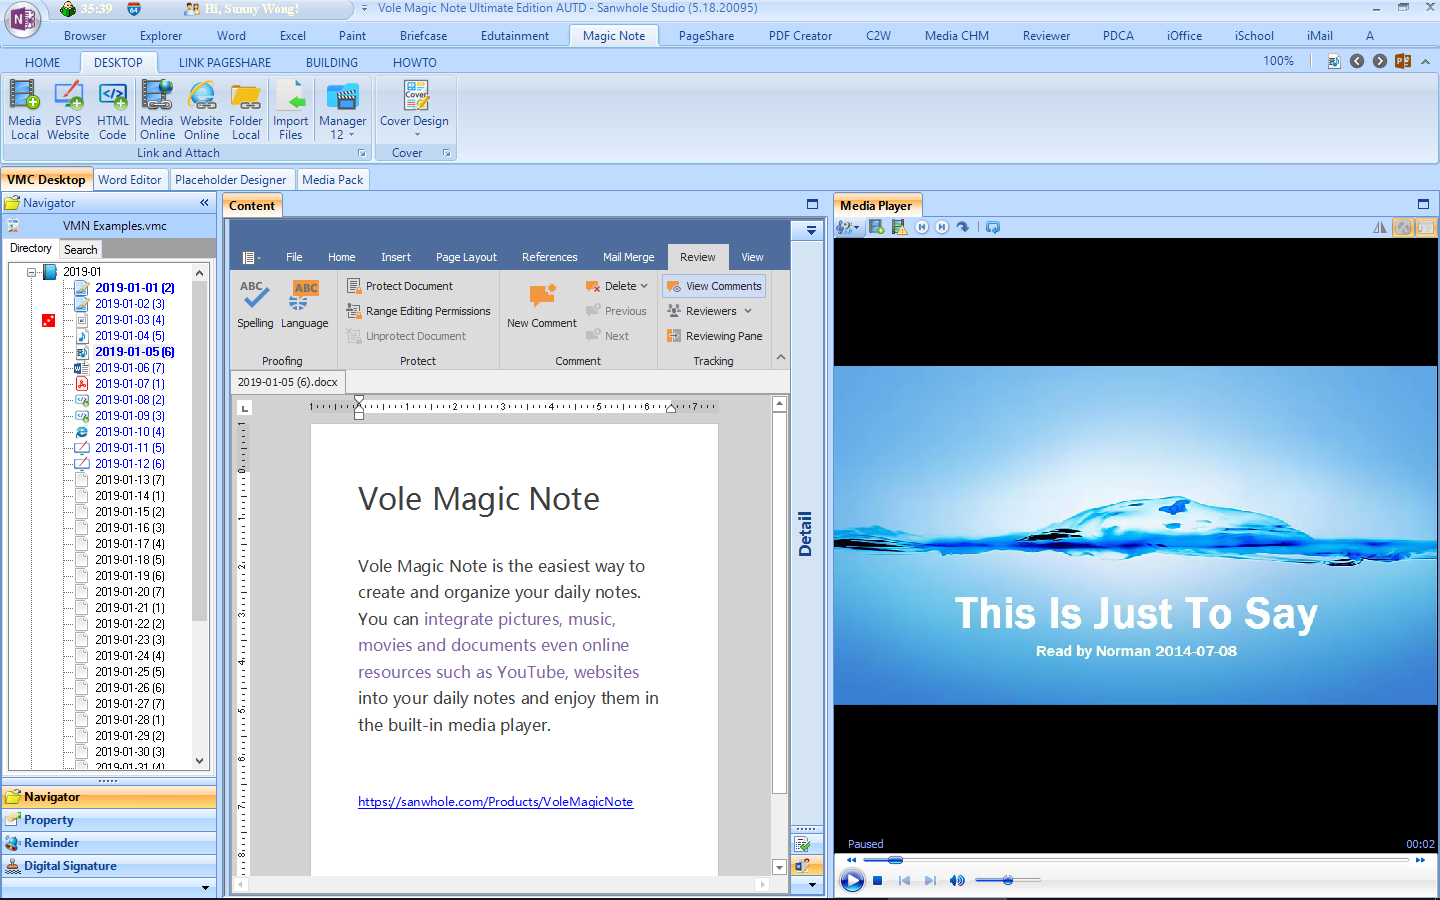 Vole Magic Note Professional Edition, Writing and Journaling Software Screenshot